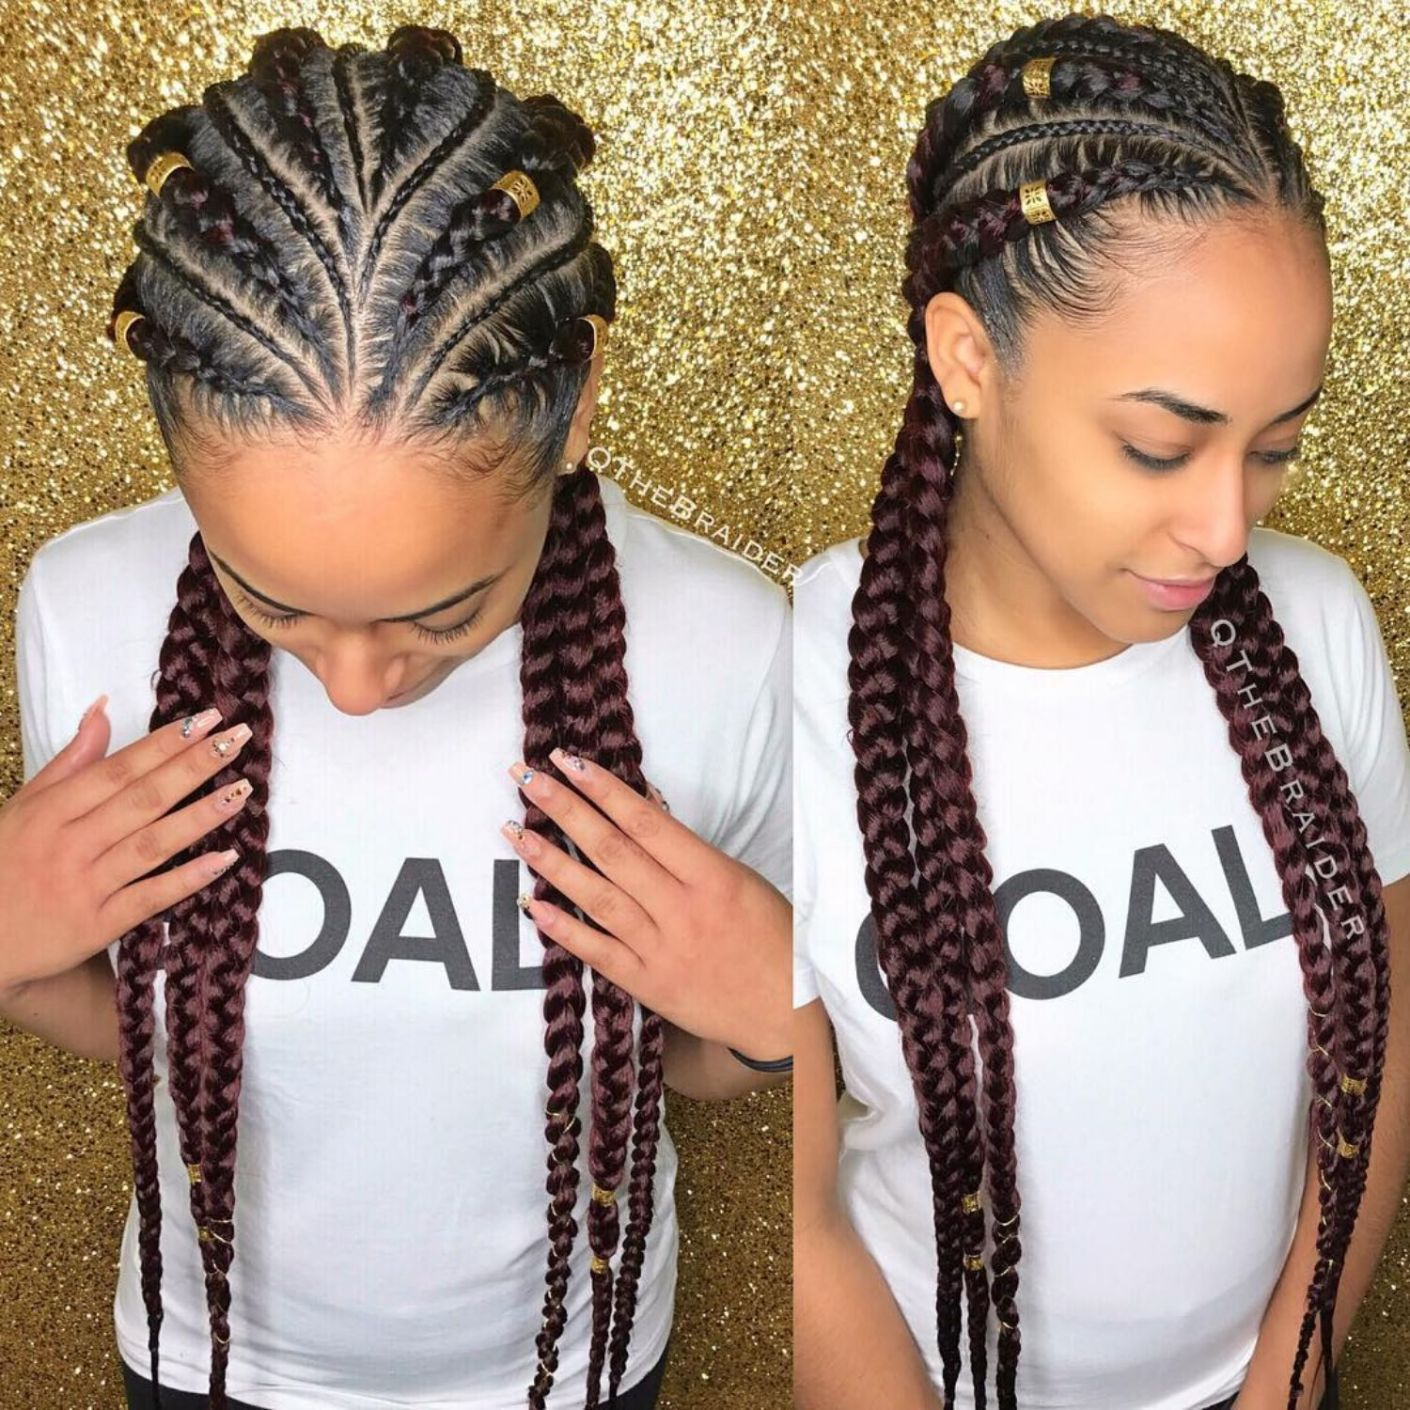 60 Inspiring Examples of Goddess Braids #24: 6 Feed-In Goddess Braids with Cornrows Being a fan of big braids, you\u2019ll appreciate the idea of these dark-maroon branching braids that are adorned with gold hair cuffs and braid string. Two goddess braids on each side and in the middle are branching out from the imaginary centre parting resulting in a unique hairstyle \u2026 #braidedhairstylesforblackwomen